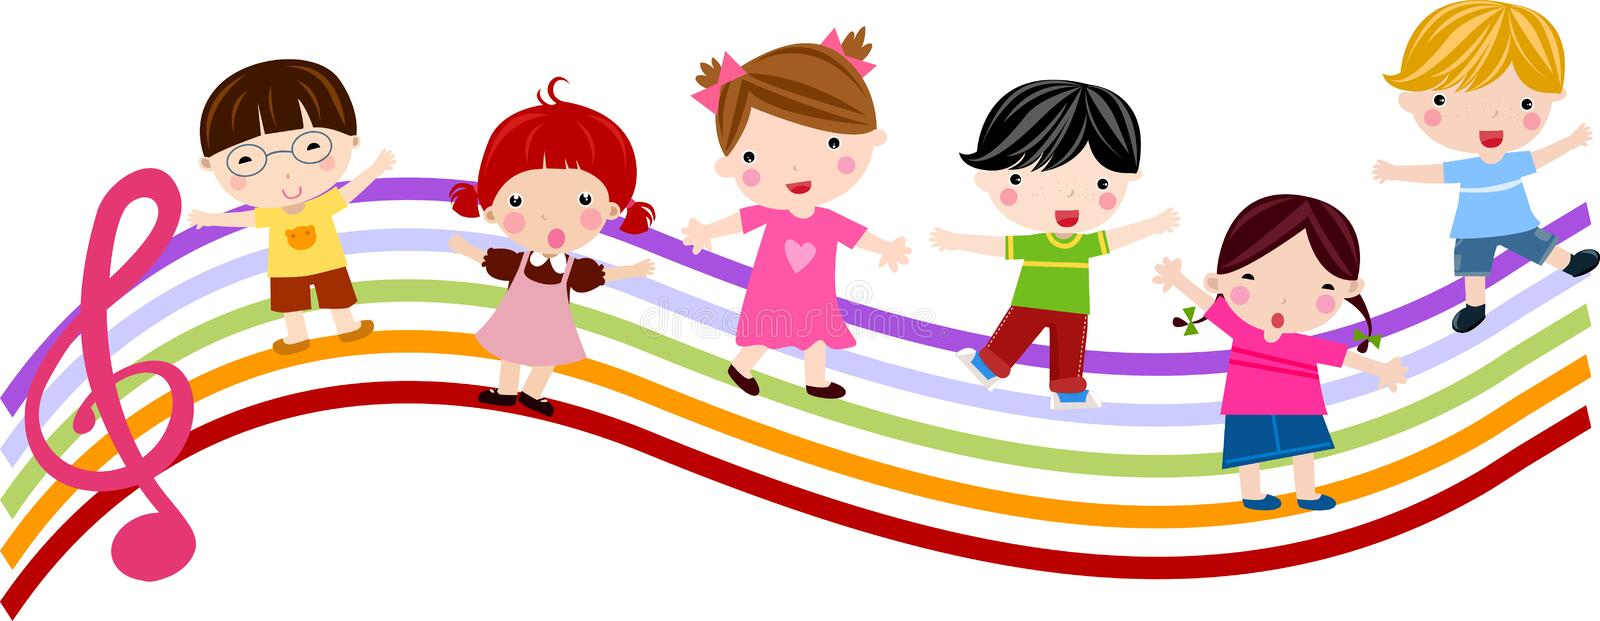 Kids and music vector illustration